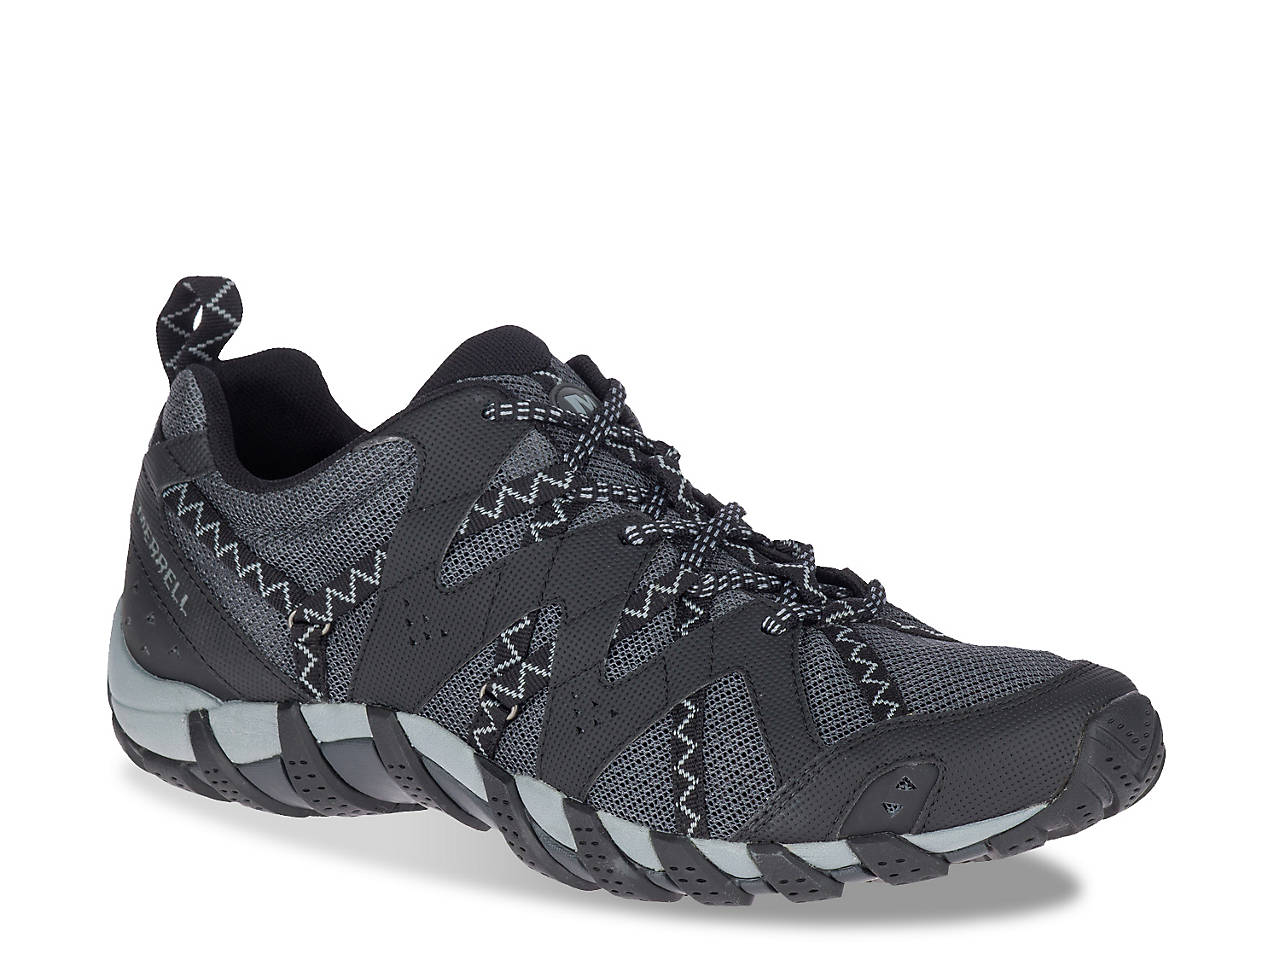 Merrell Waterpro Maipo Walking Shoes | Vibram | Hydro